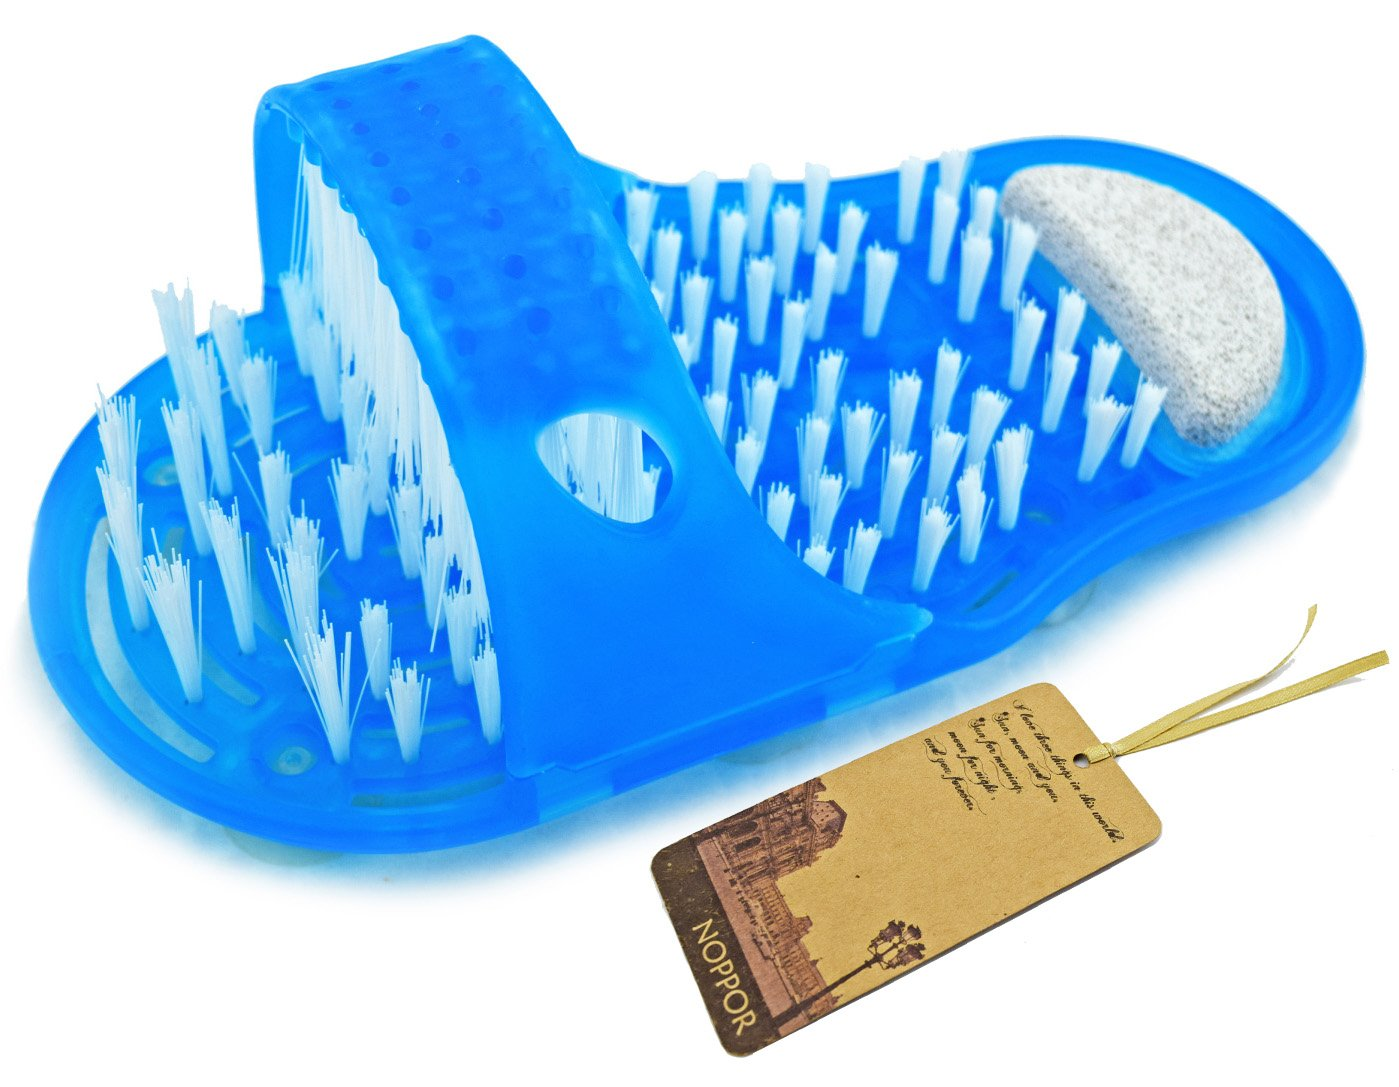 Noppor Bathroom Shower No Bending Feet Brush Foot Cleaning Bristle Slipper Bath Scrubber Massager Stick on Floor (Blue)